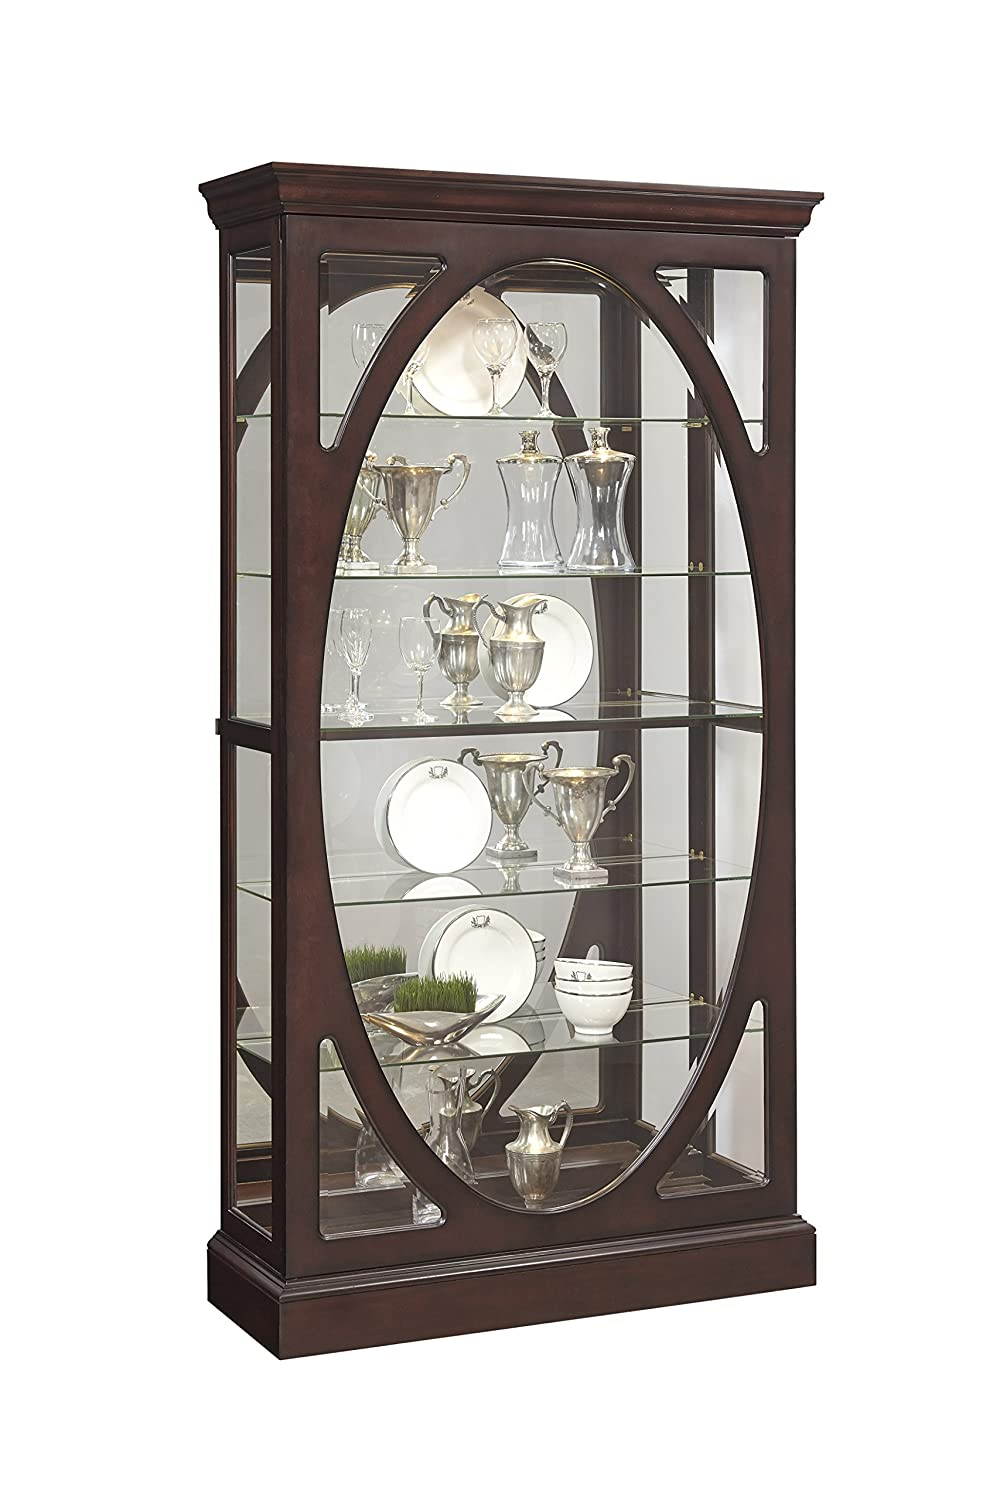 Design China Cabinets And Hutches china cabinets amazon com pulaski p021569 sable oval framed mirrored curio cabinet 43 0 x 15 1